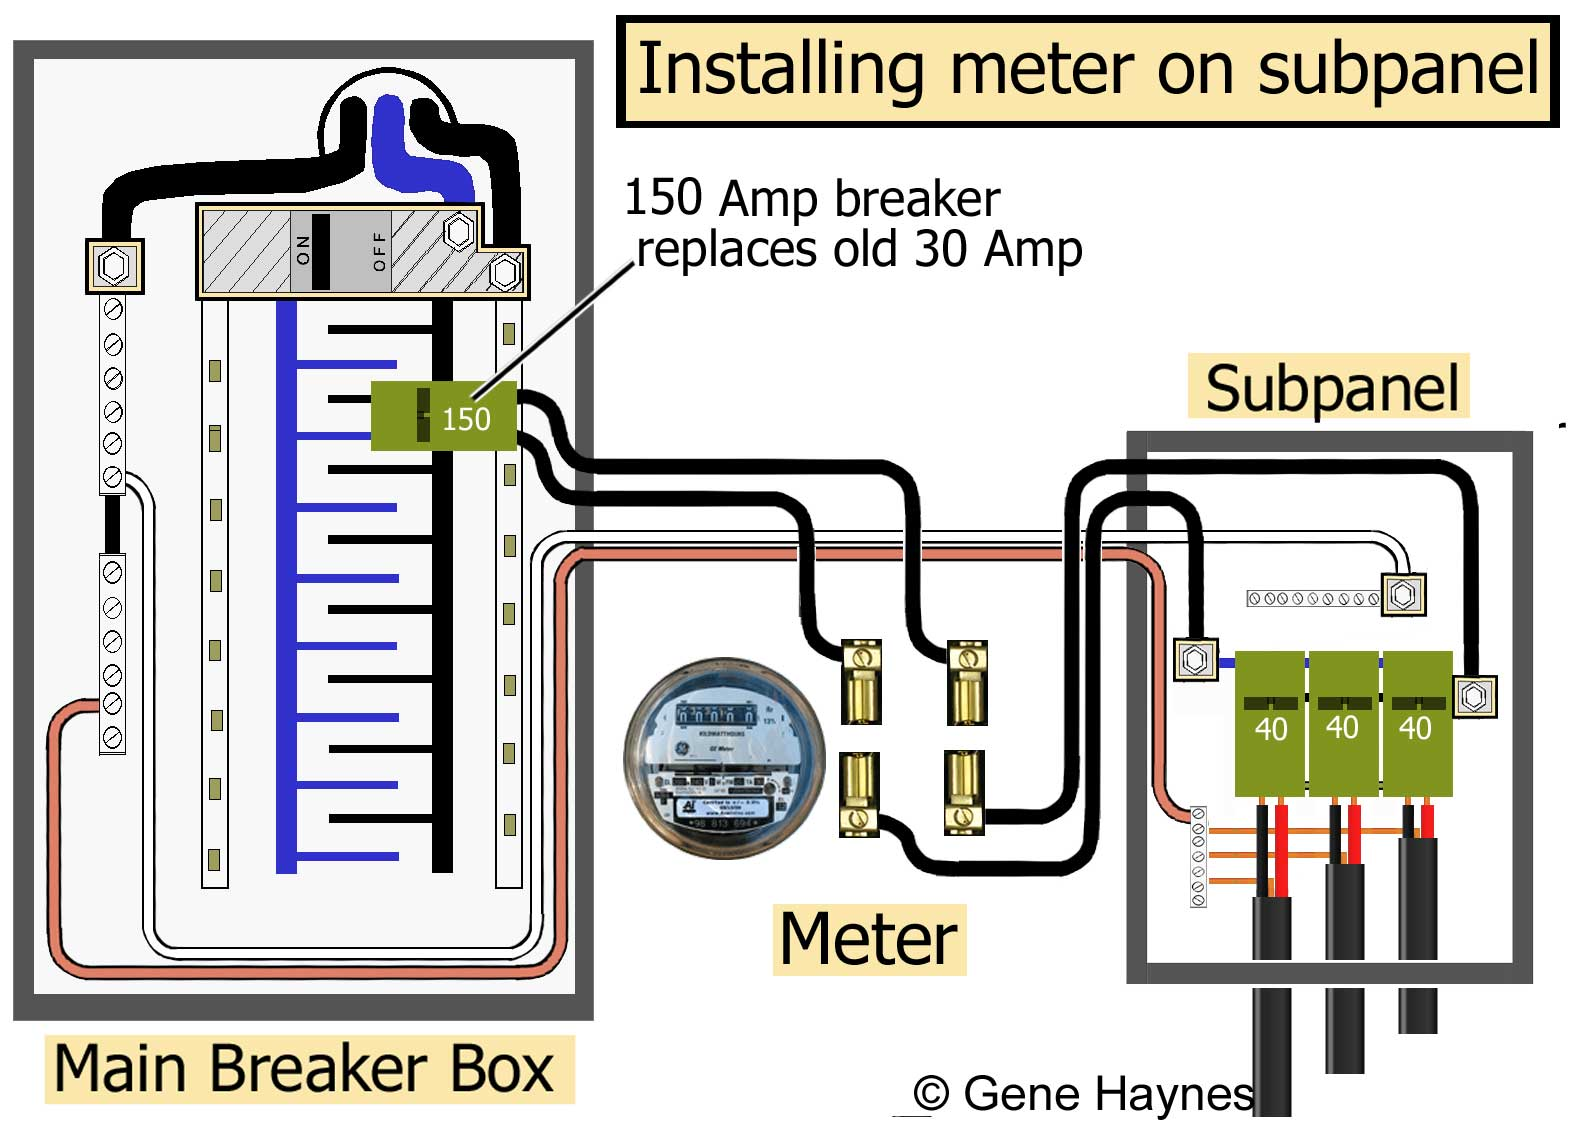 Main subpanel Tankless meter 600 how to wire tankless electric water heater 60 amp sub panel wiring diagram at soozxer.org